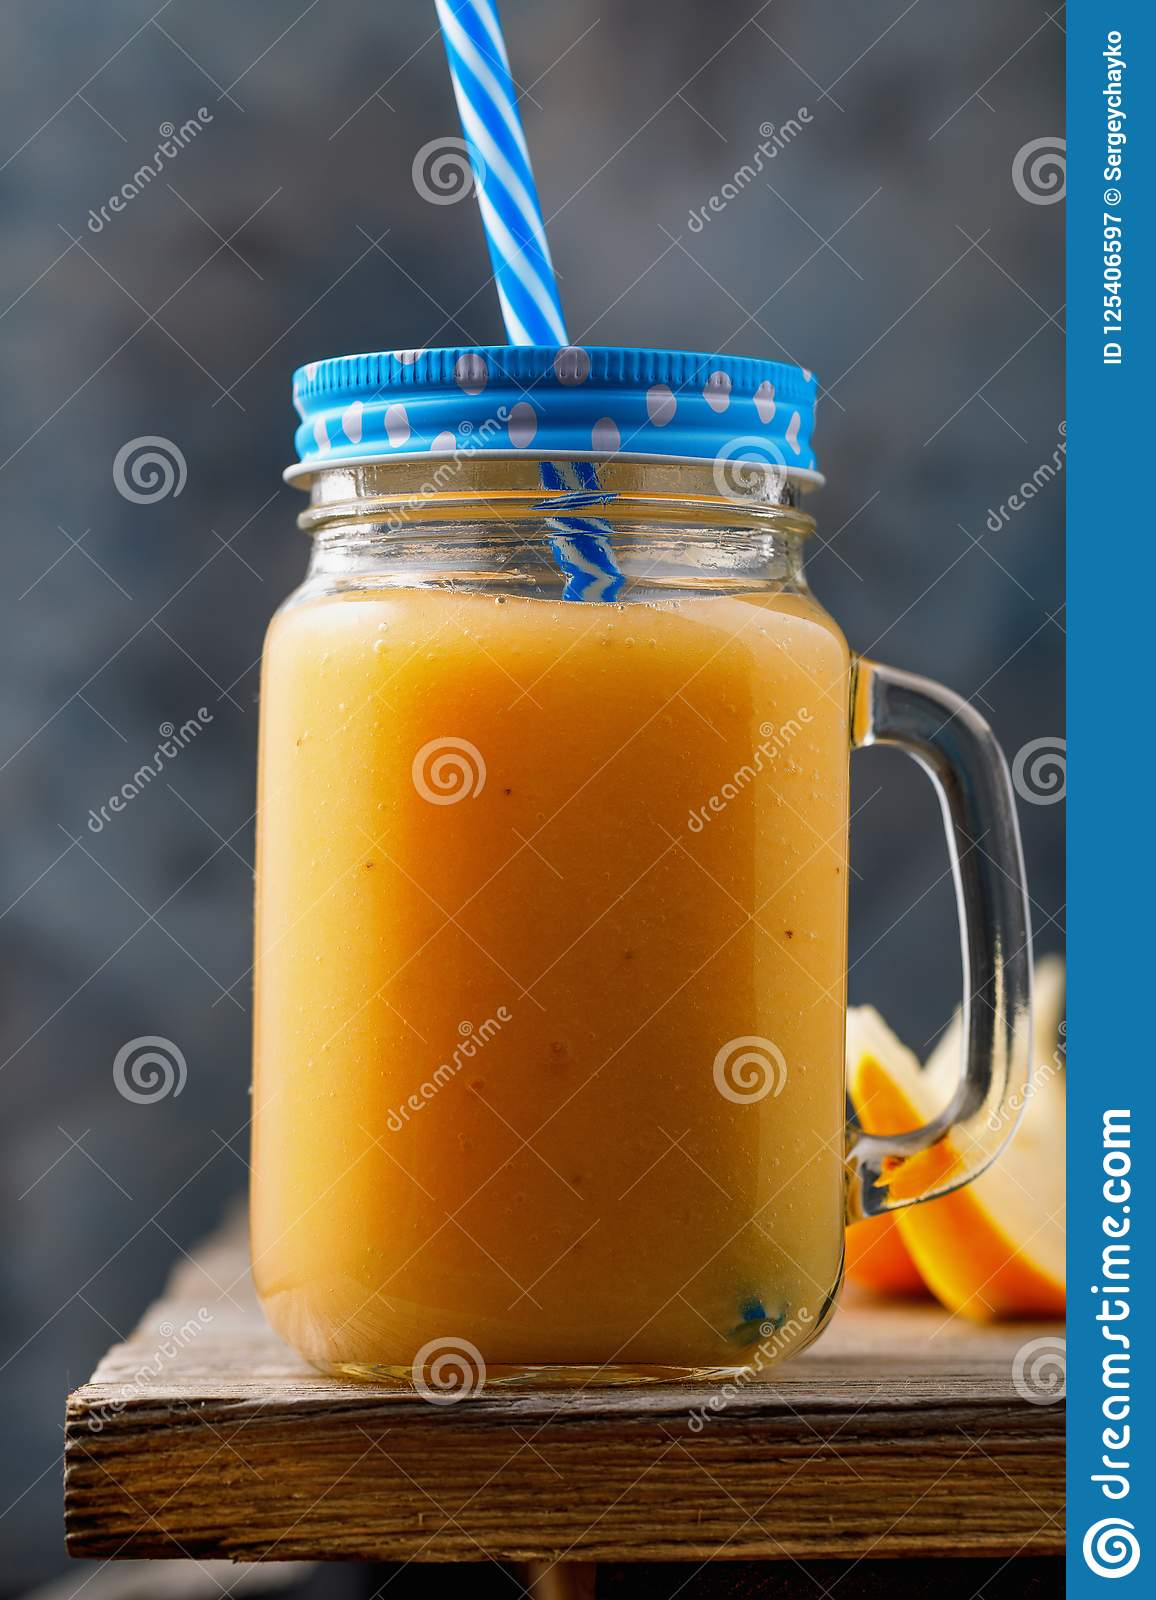 Smoothies made from ripe melon. Drink in a jar on a wooden table